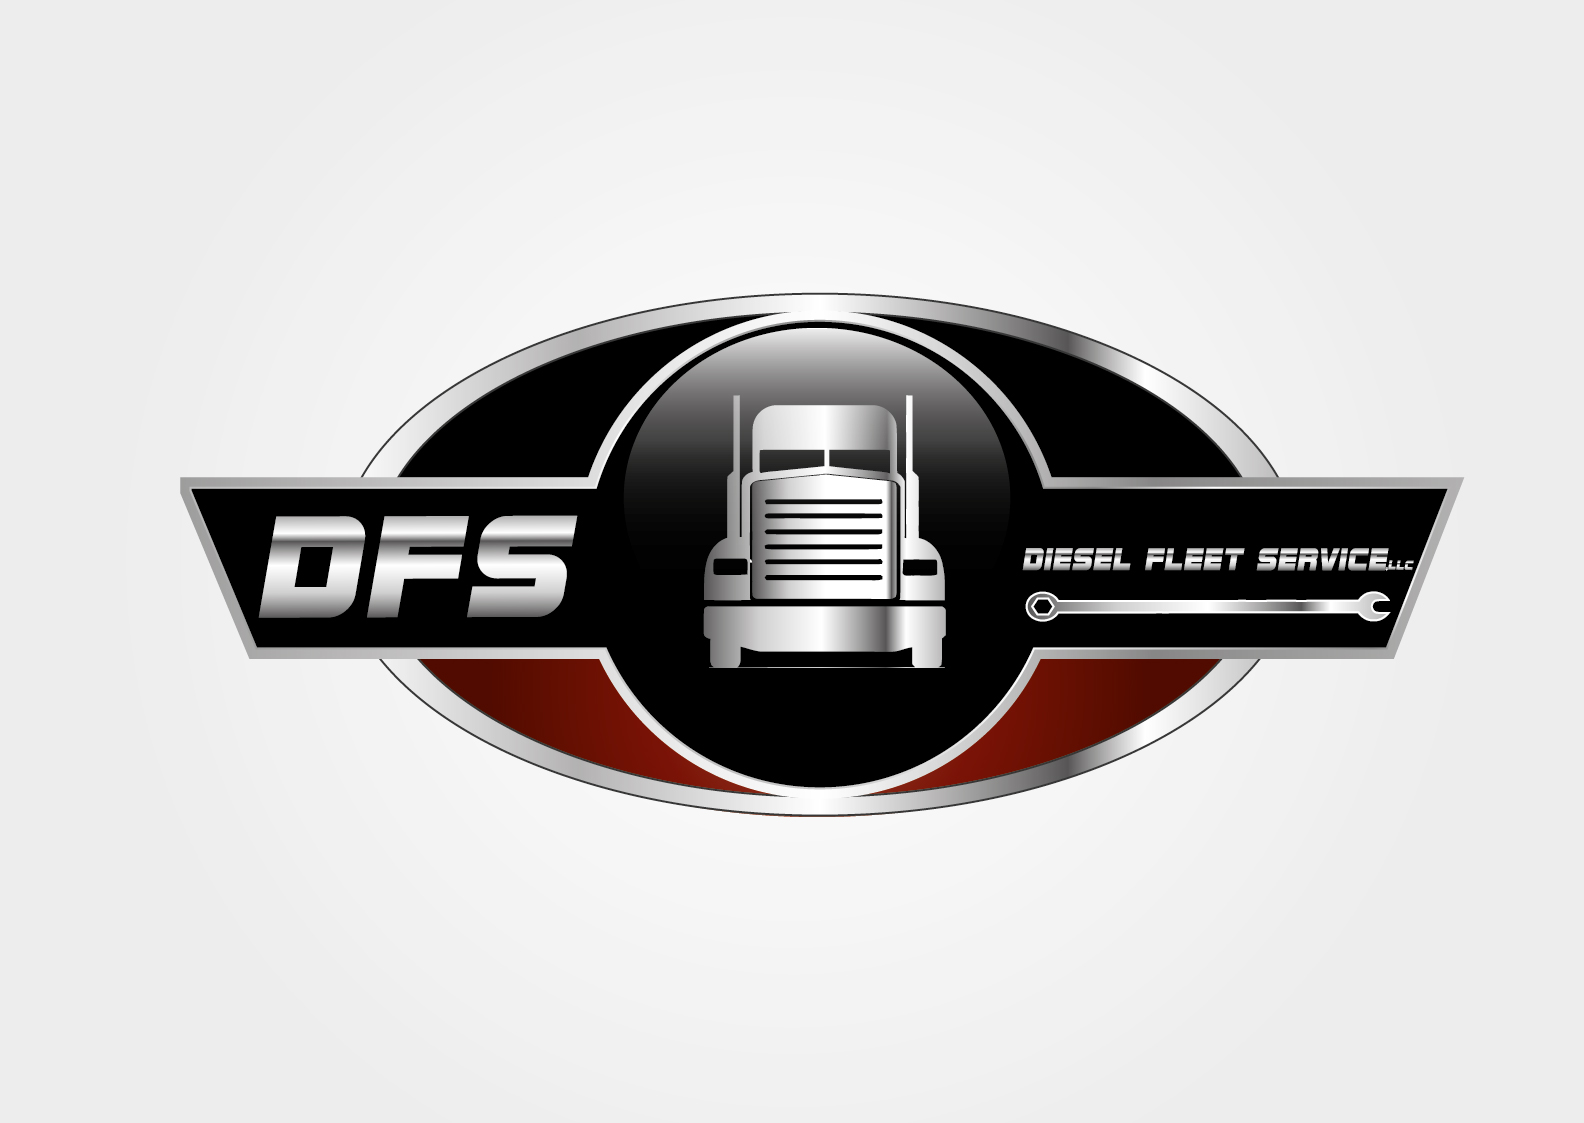 Logo Design by VENTSISLAV KOVACHEV - Entry No. 18 in the Logo Design Contest Artistic Logo Design for Diesel Fleet Service, LLC.